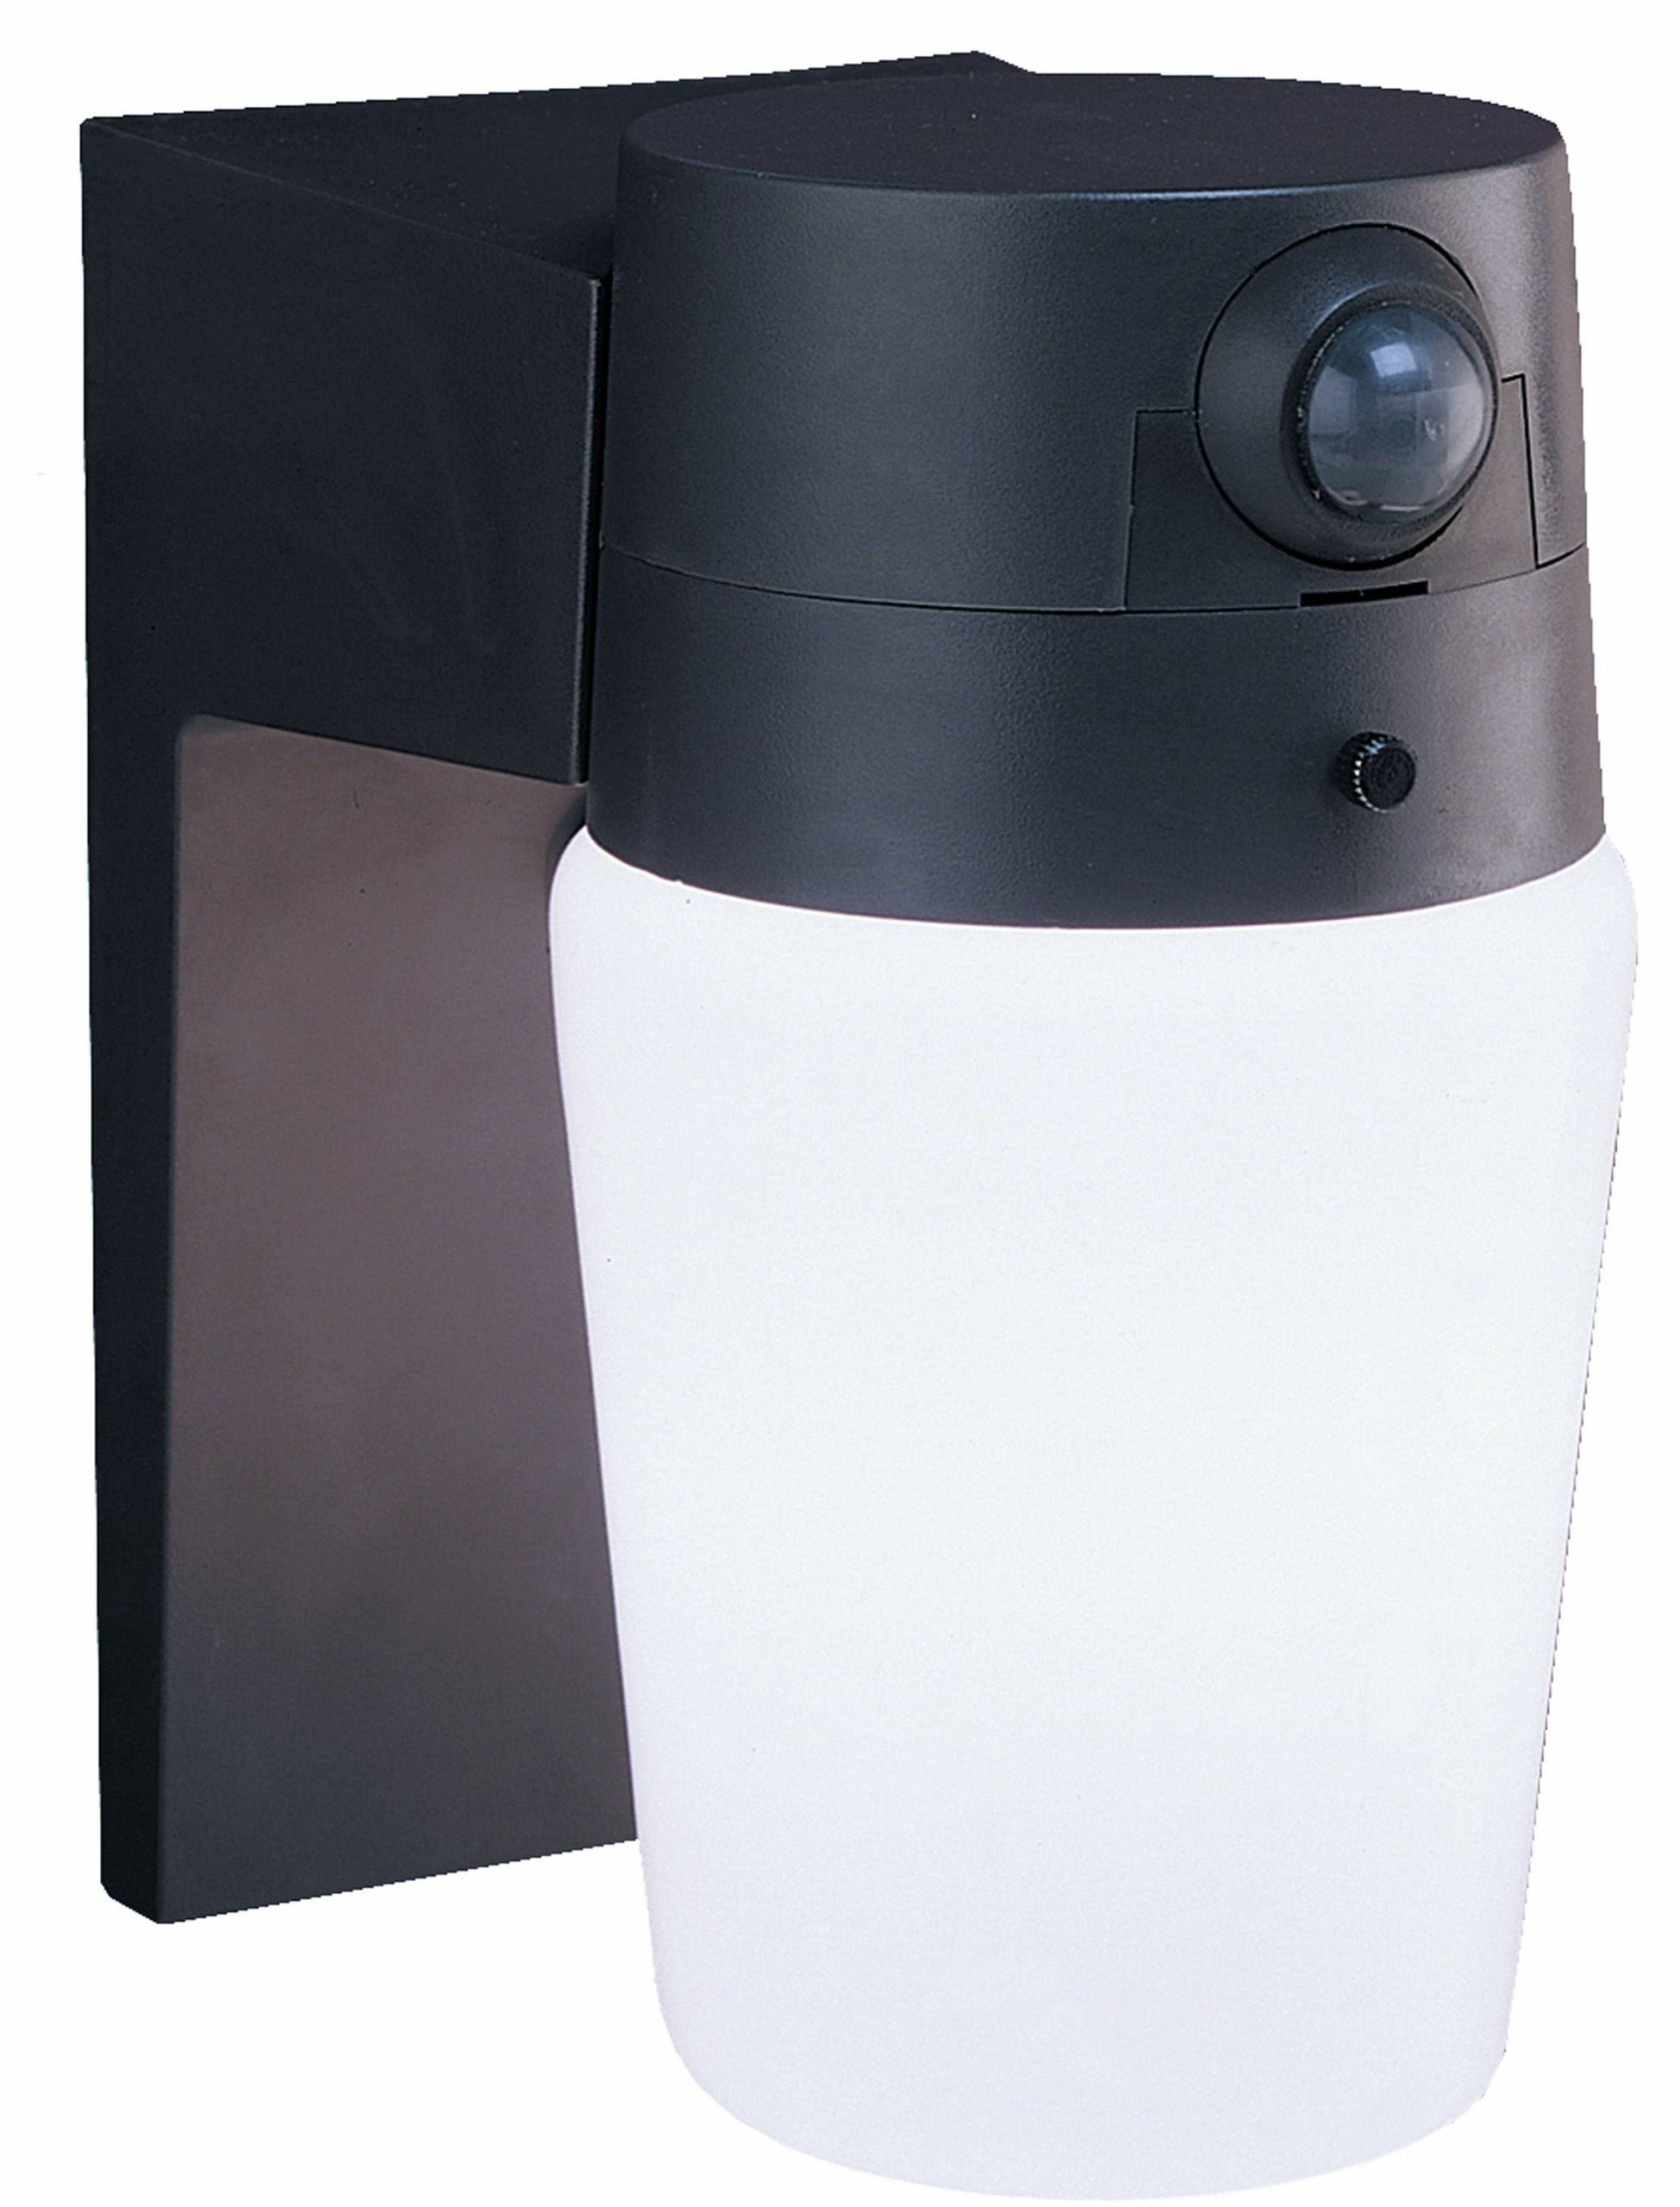 Heath Zenith SL-5610-BZ-B Entryway Motion-Sensing Security Light - Bronze